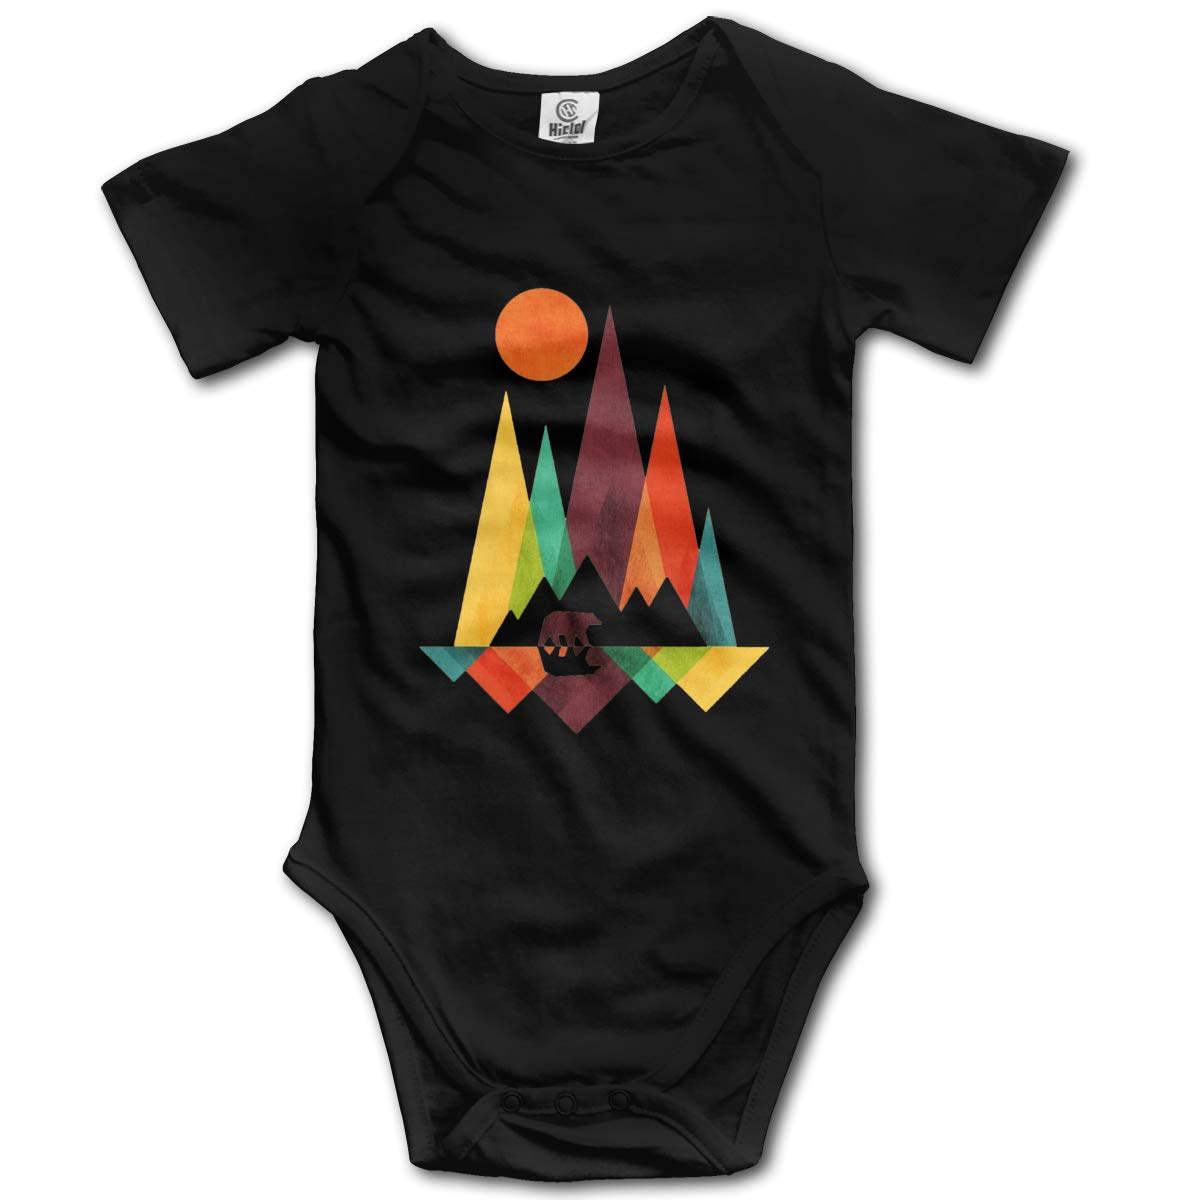 Bodysuits Clothes Onesies Jumpsuits Outfits Black HappyLifea Mountain Bear Colorful Logo Baby Pajamas